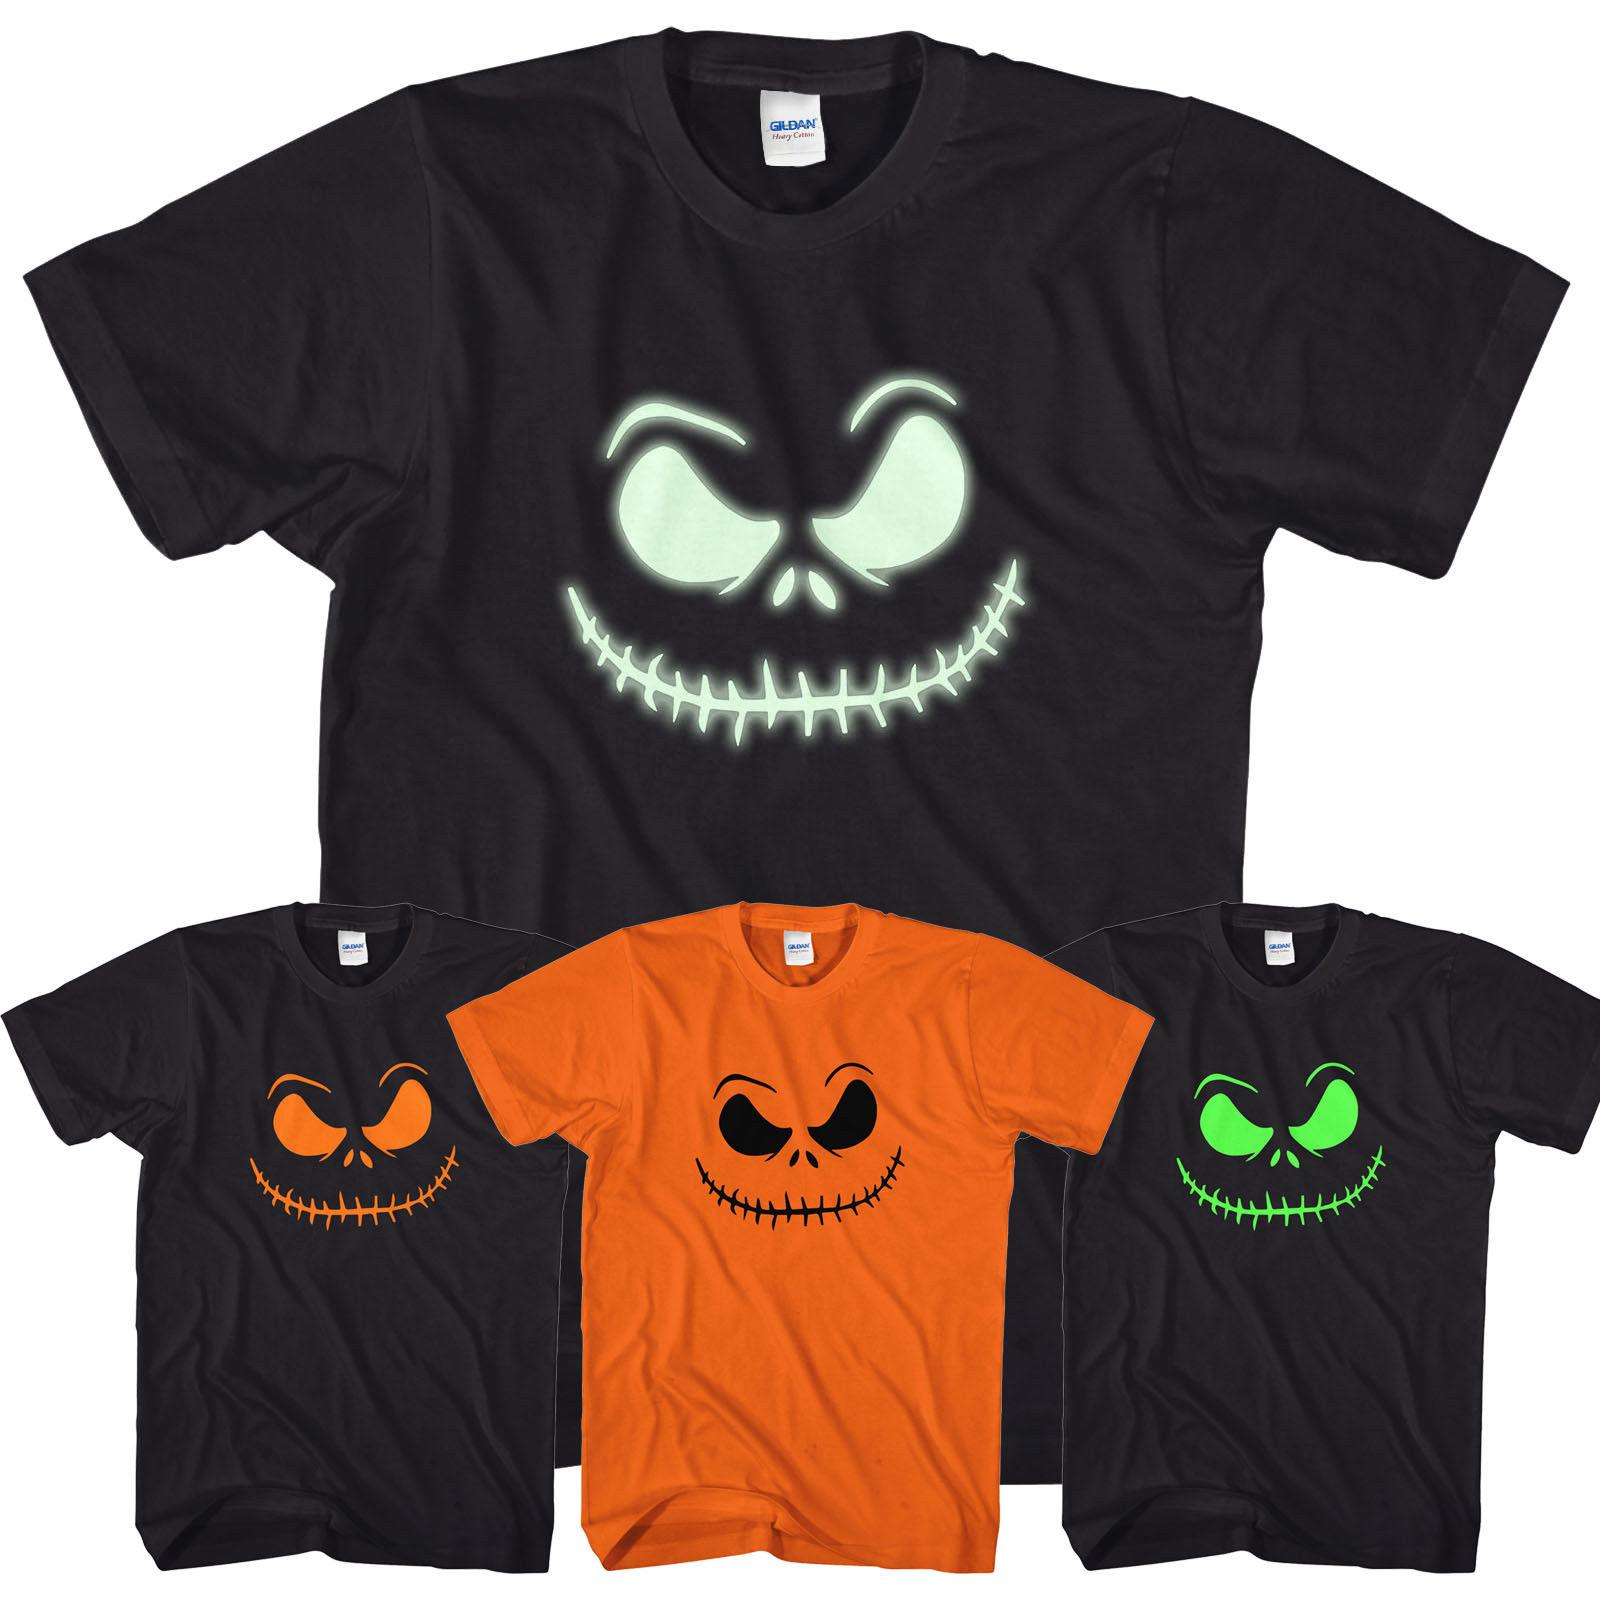 4798d197ec Smiling Jack T Shirt Scary Halloween Top Glow In The Dark Print O Lantern  L317Funny Unisex Casual Gift Tees Designs Find A Shirt From  Fashionistas_tees, ...